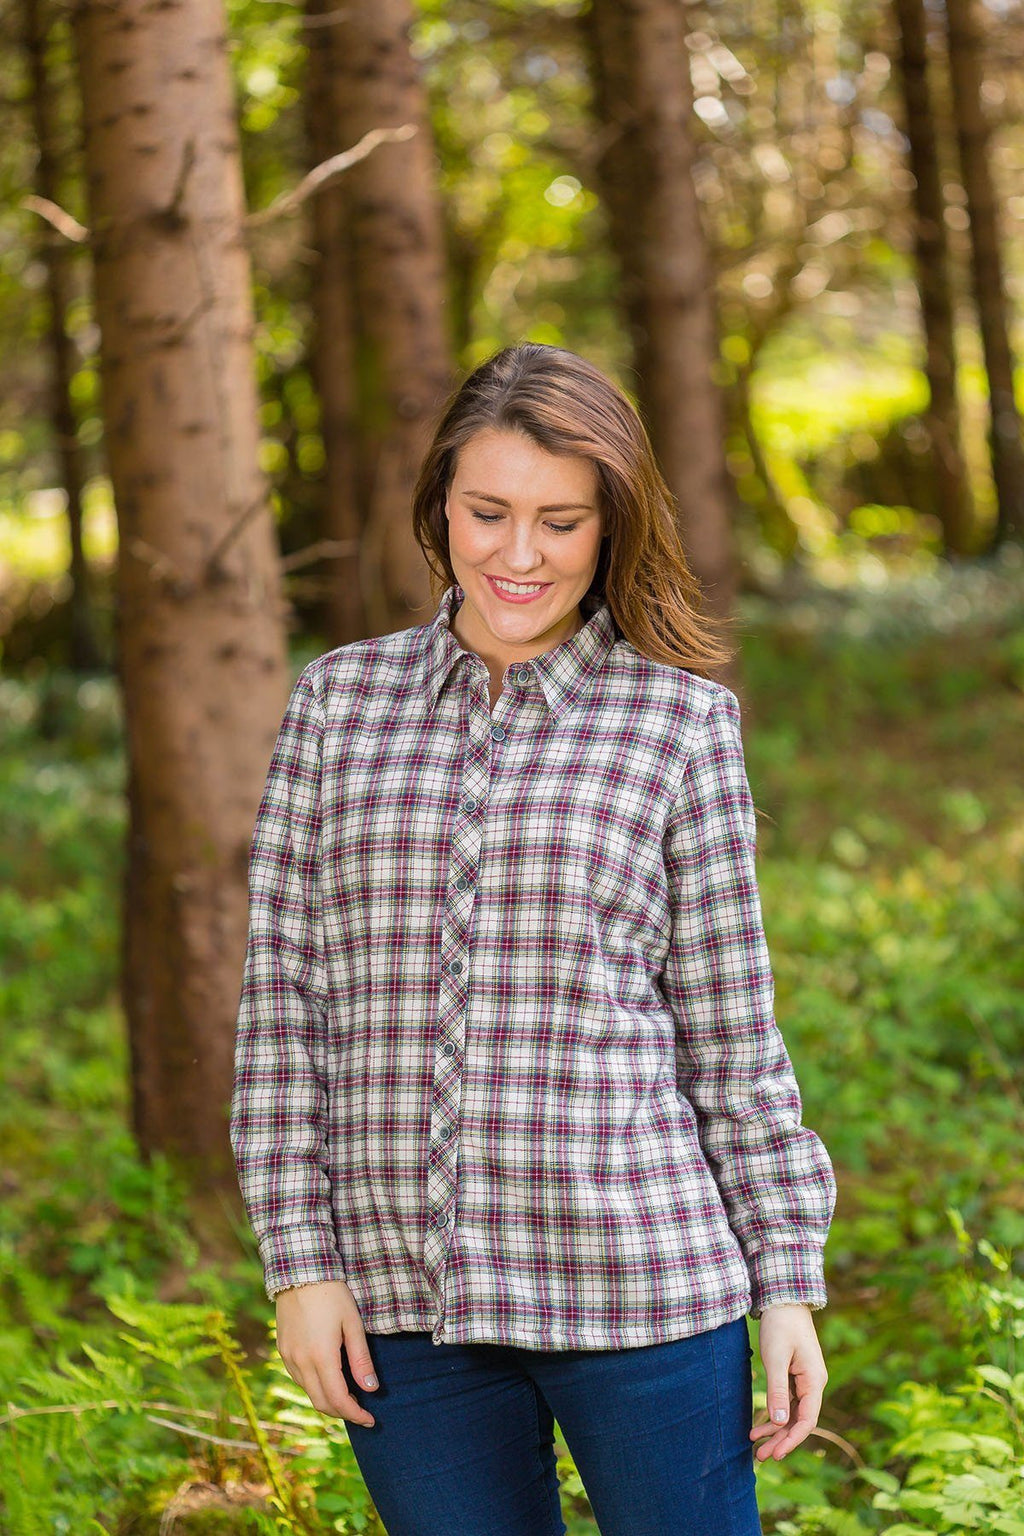 Collar Shirts Eskra Fleece Lined Flannel Ladies Maroon Check (LV7) - Lee Valley Ireland - 3